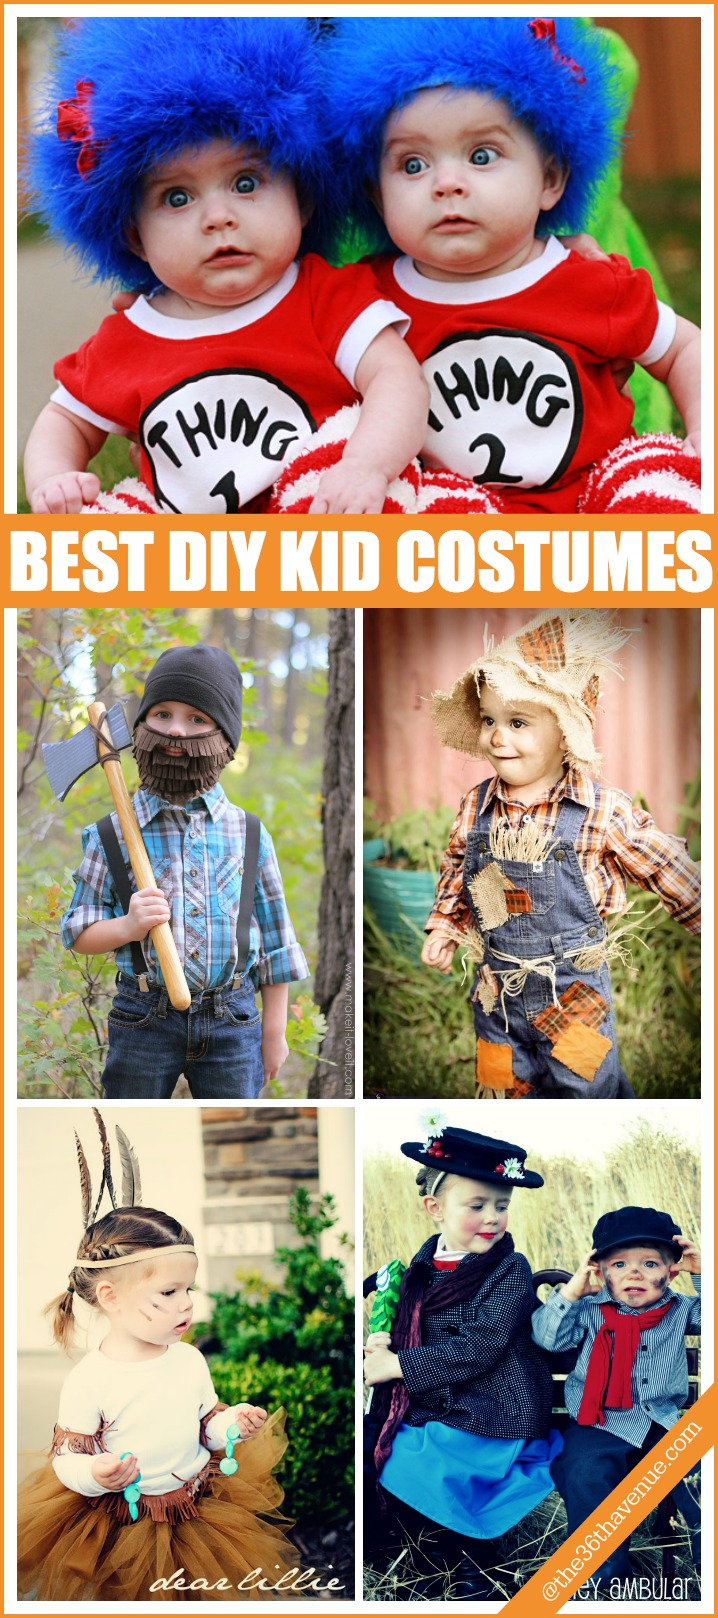 Halloween Costumes - Adorable DIY Costumes for Kids. Easy to make, clever ideas, and from outfits that you may already have at home!